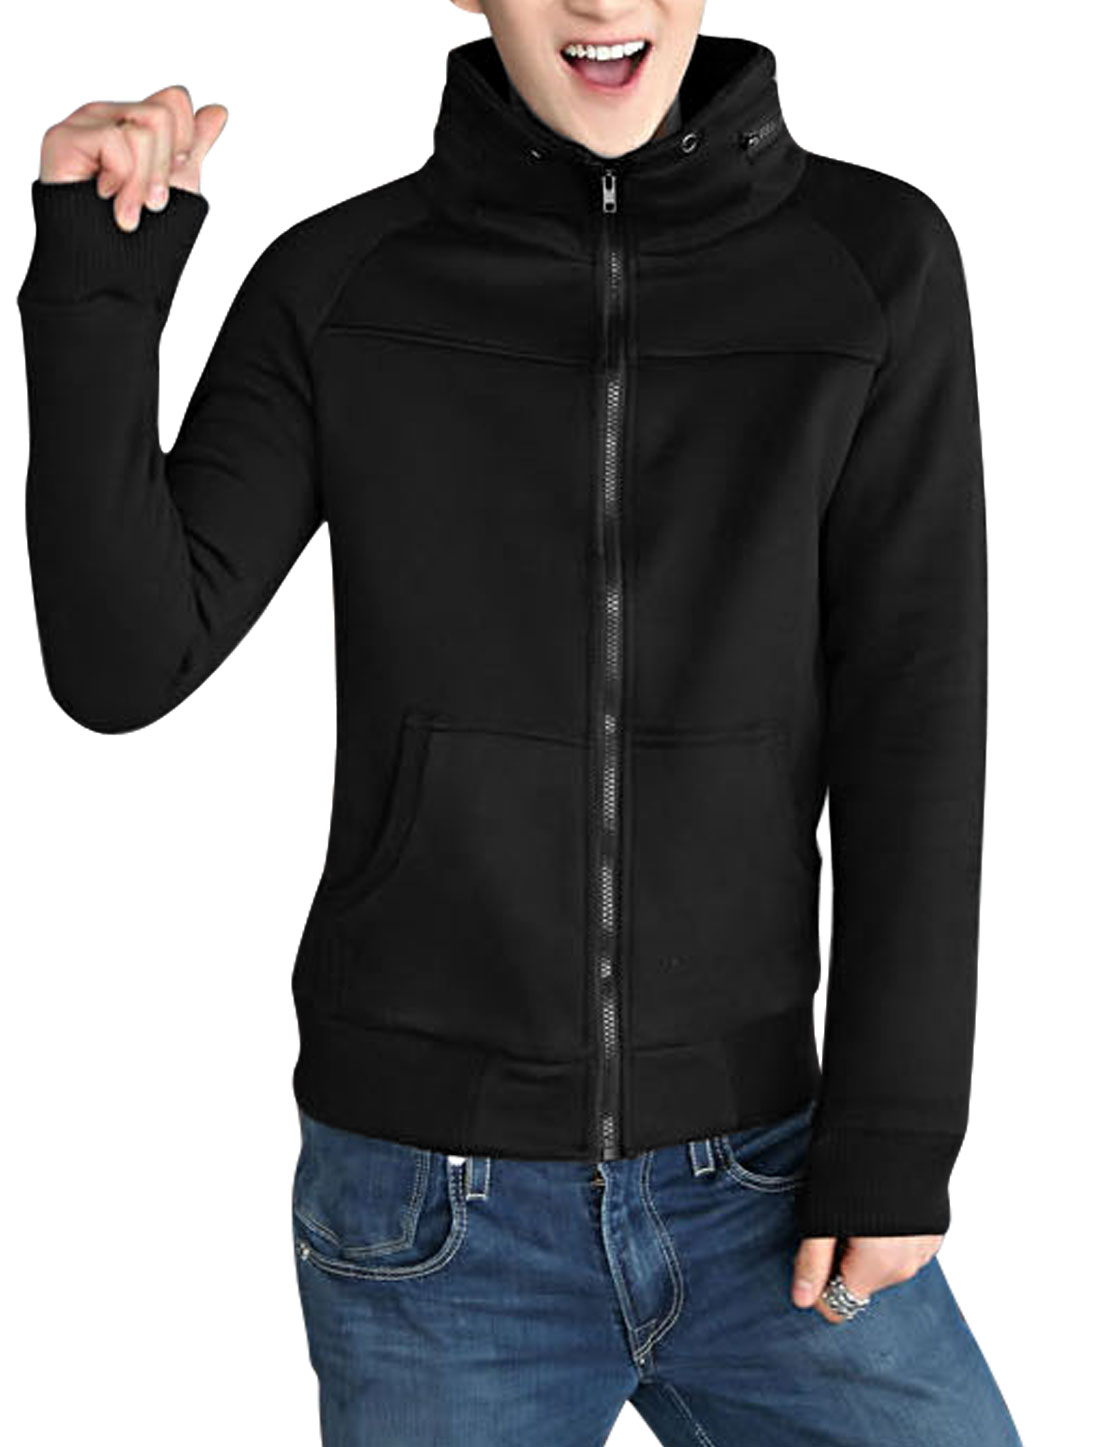 Men Black Raglan Sleeve Zip Up Fashionable Casual Sweatshirt M